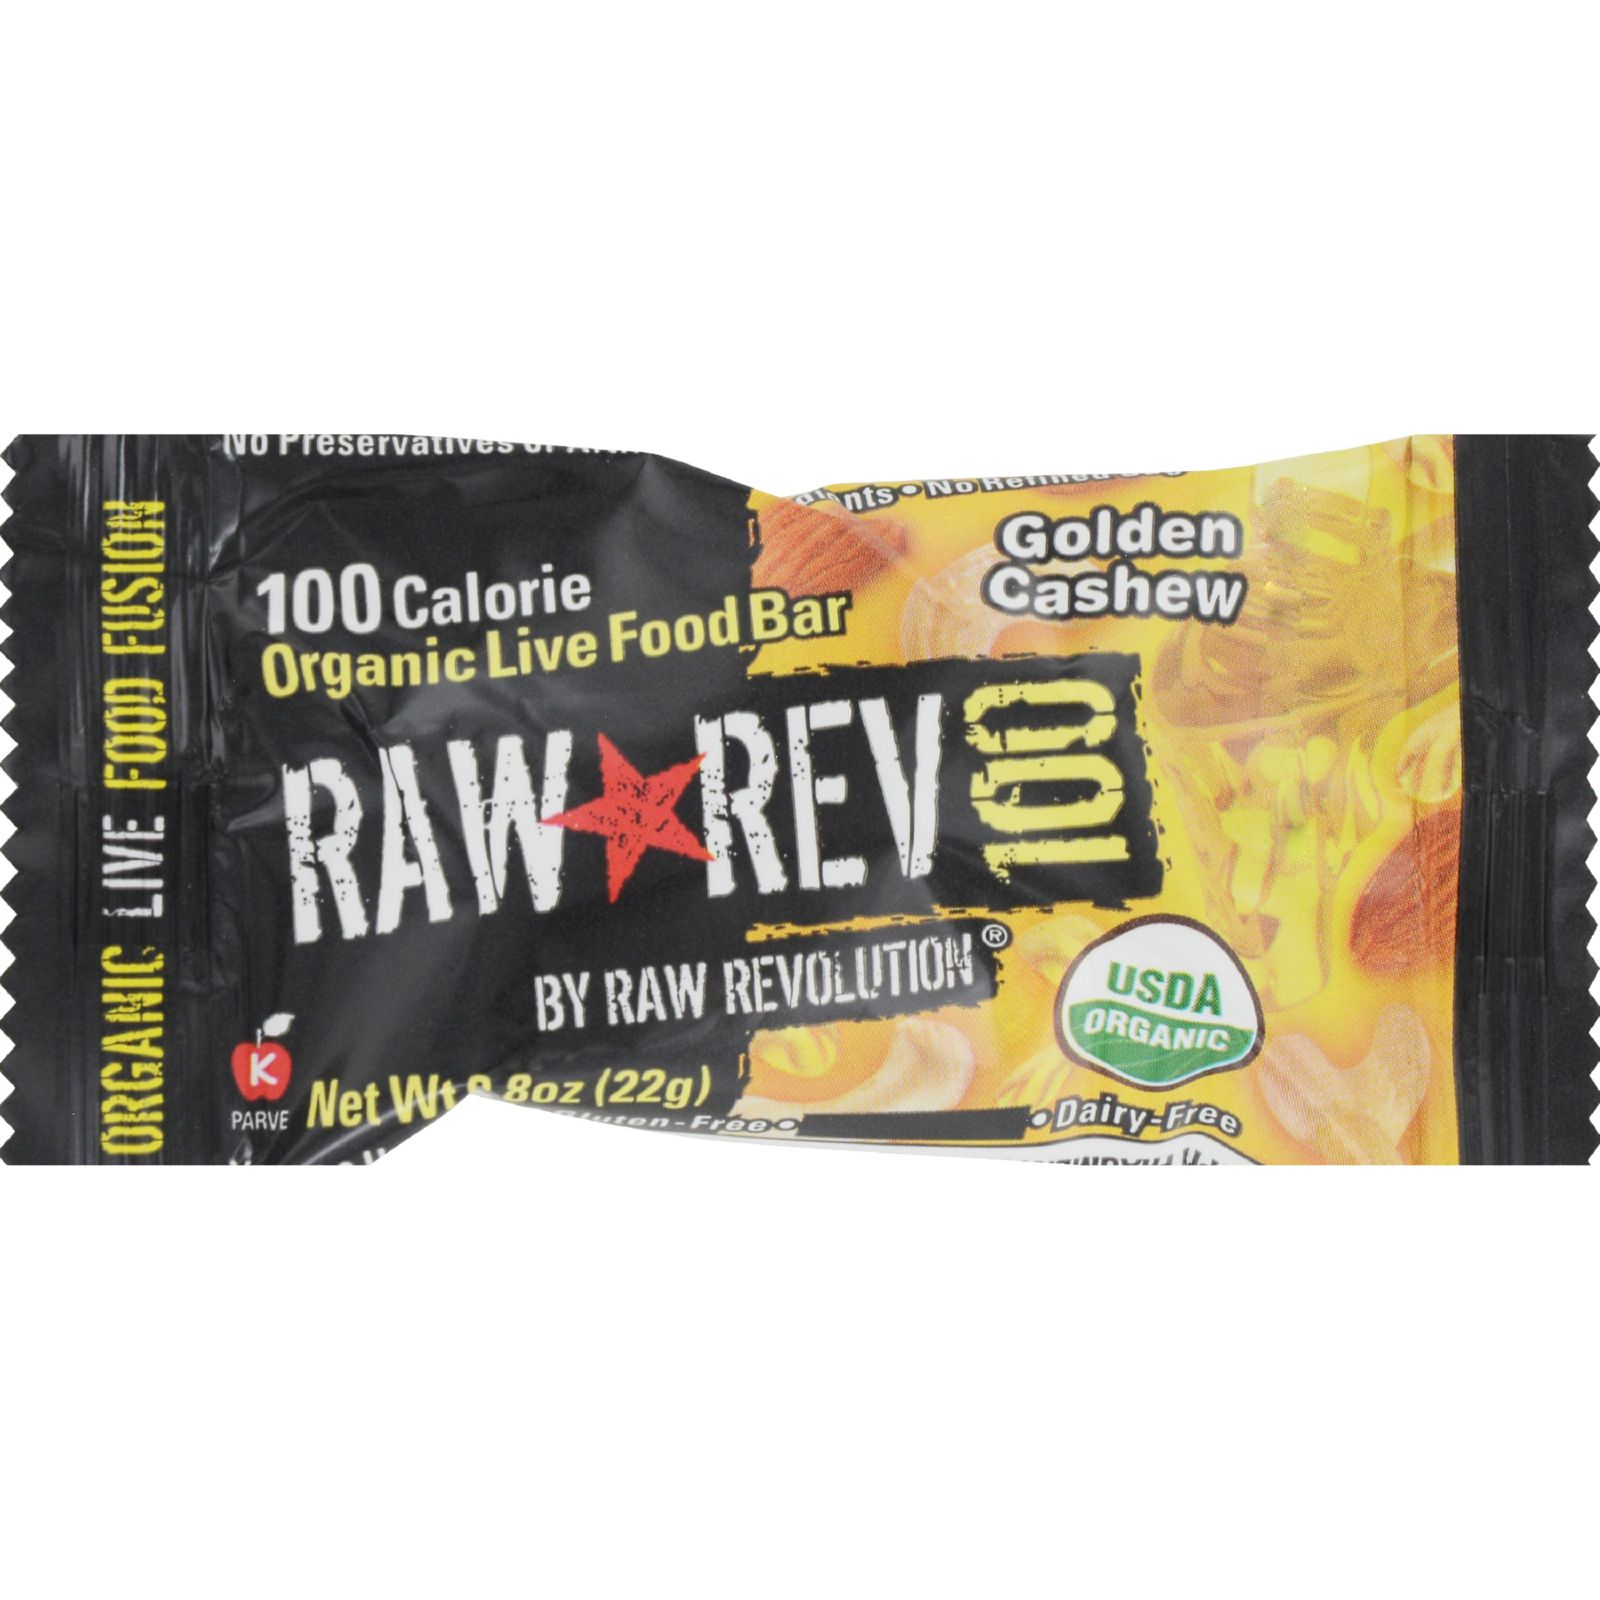 Raw Revolution Bar - Organic Cashew and Agave Nectar - Case of 20 - .8 oz